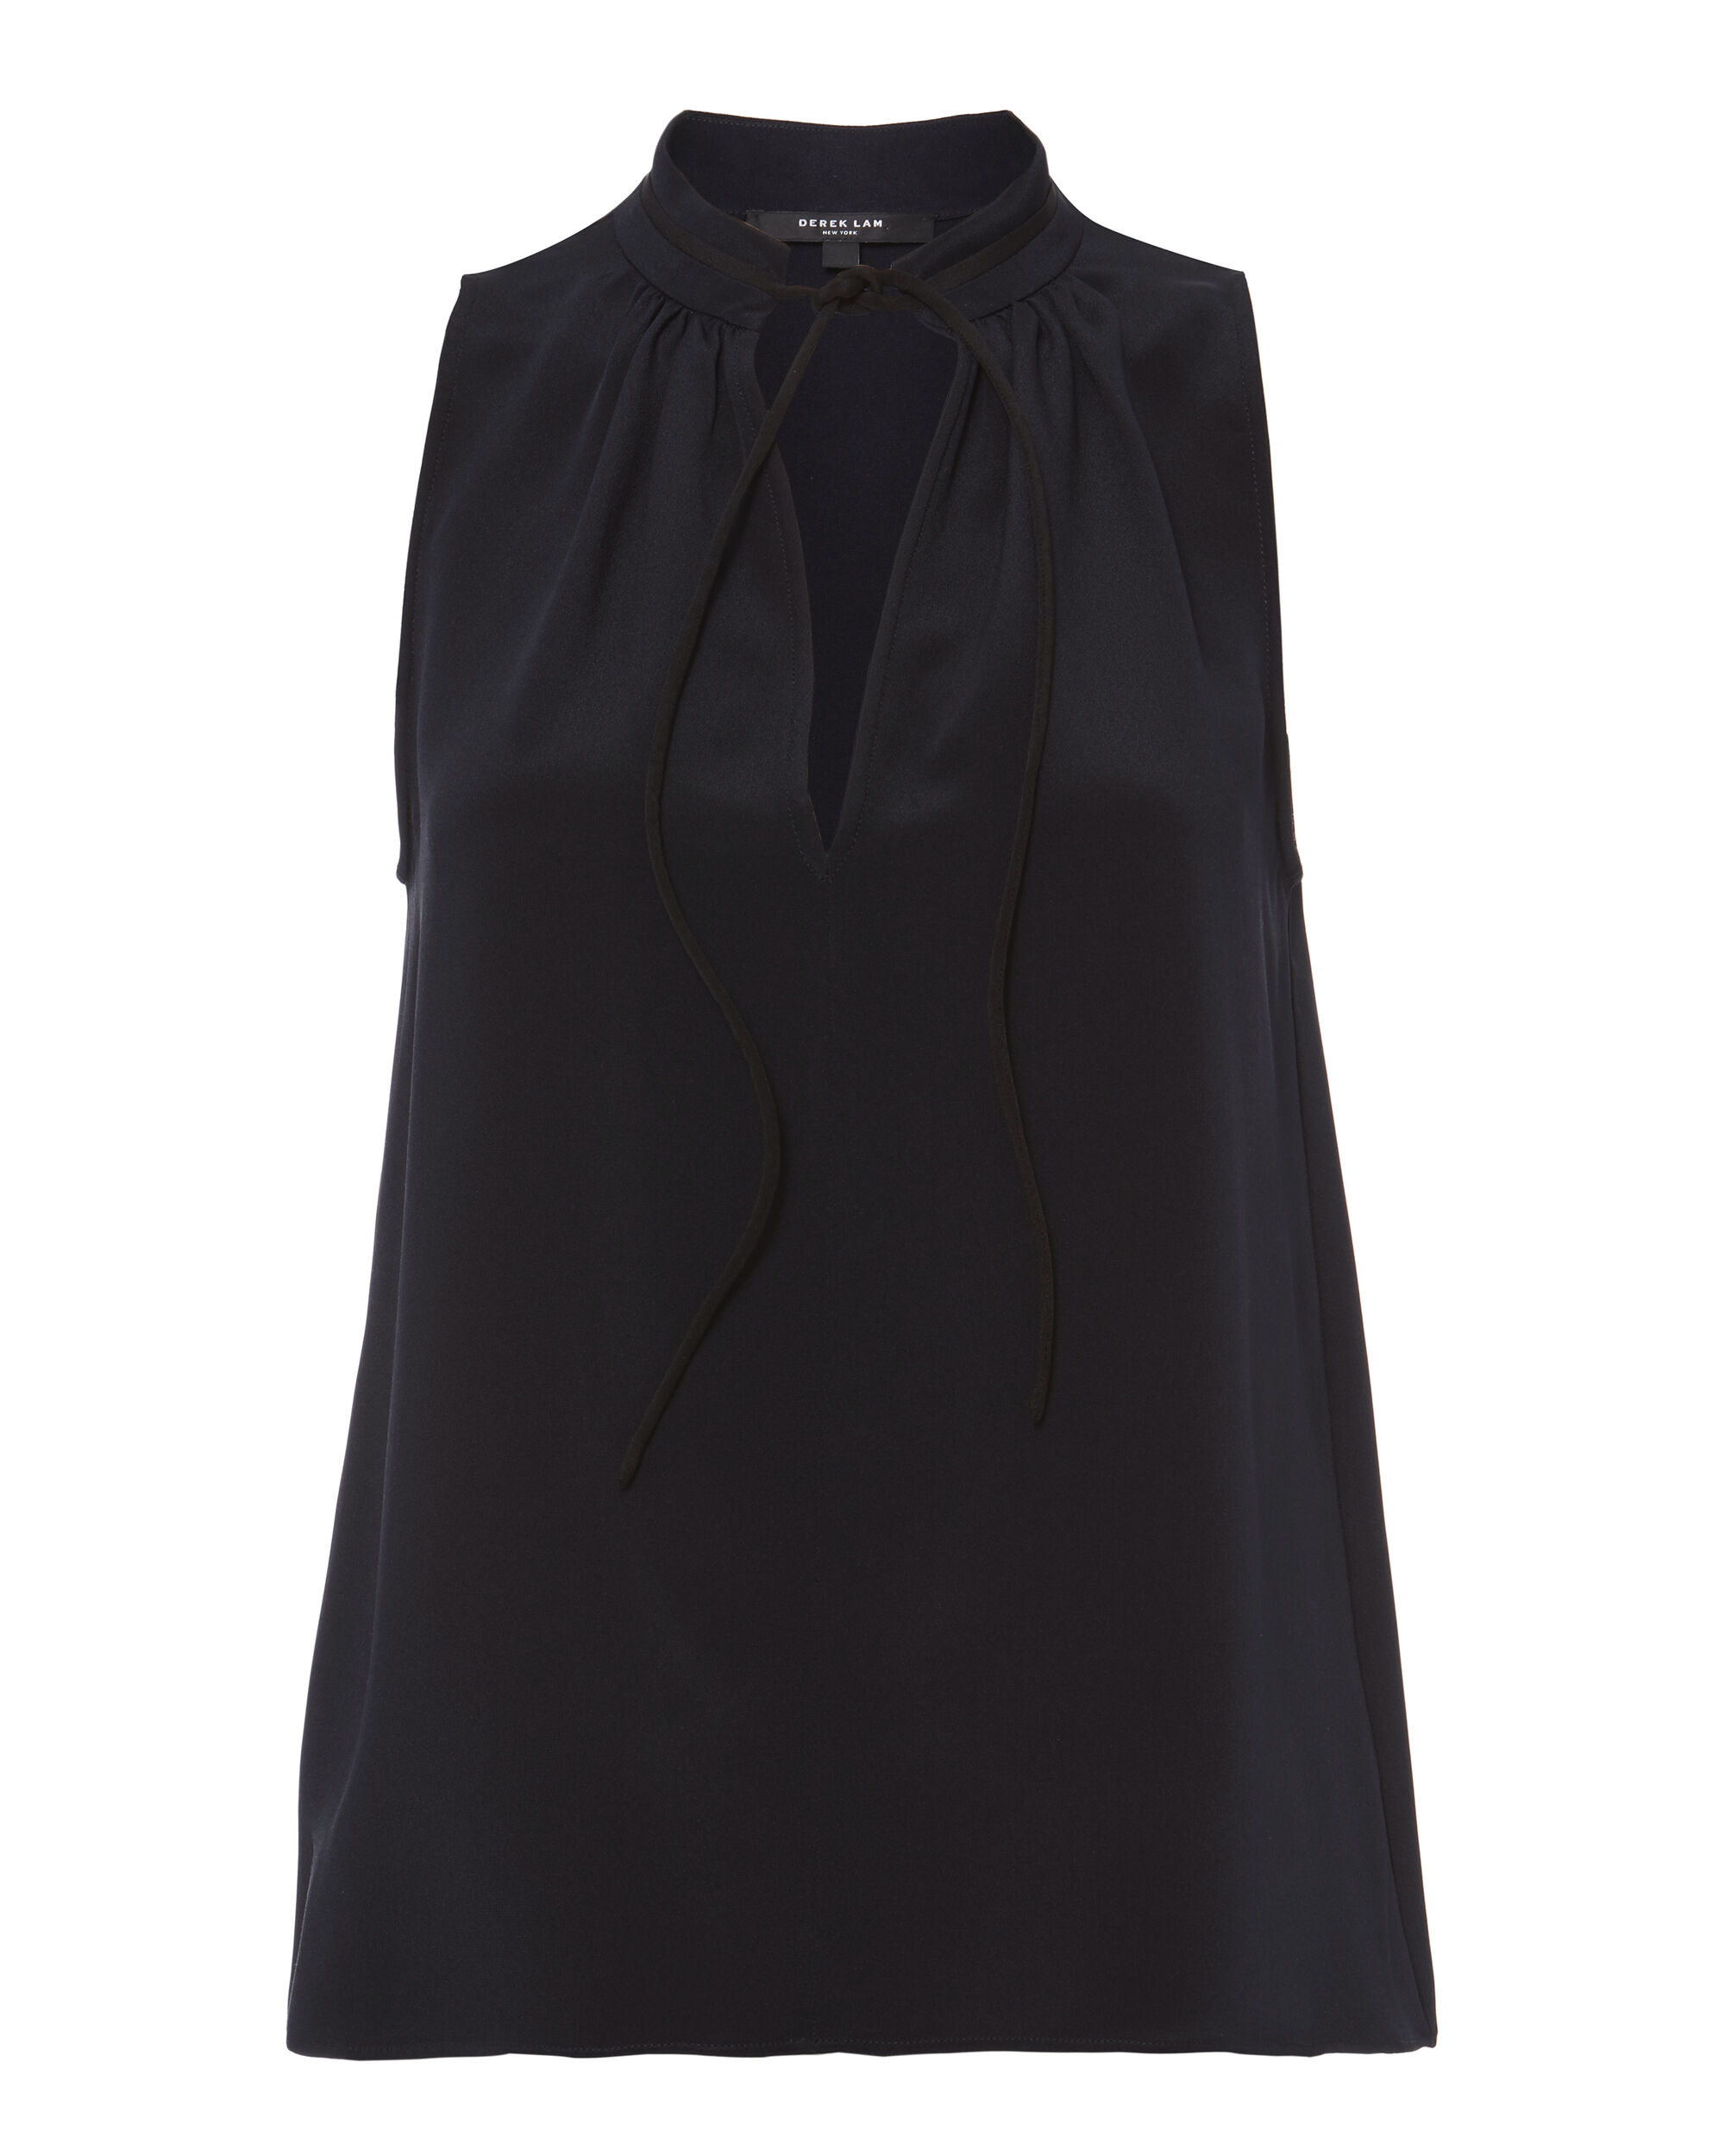 Victoire Sleeveless Blouse, NAVY, hi-res